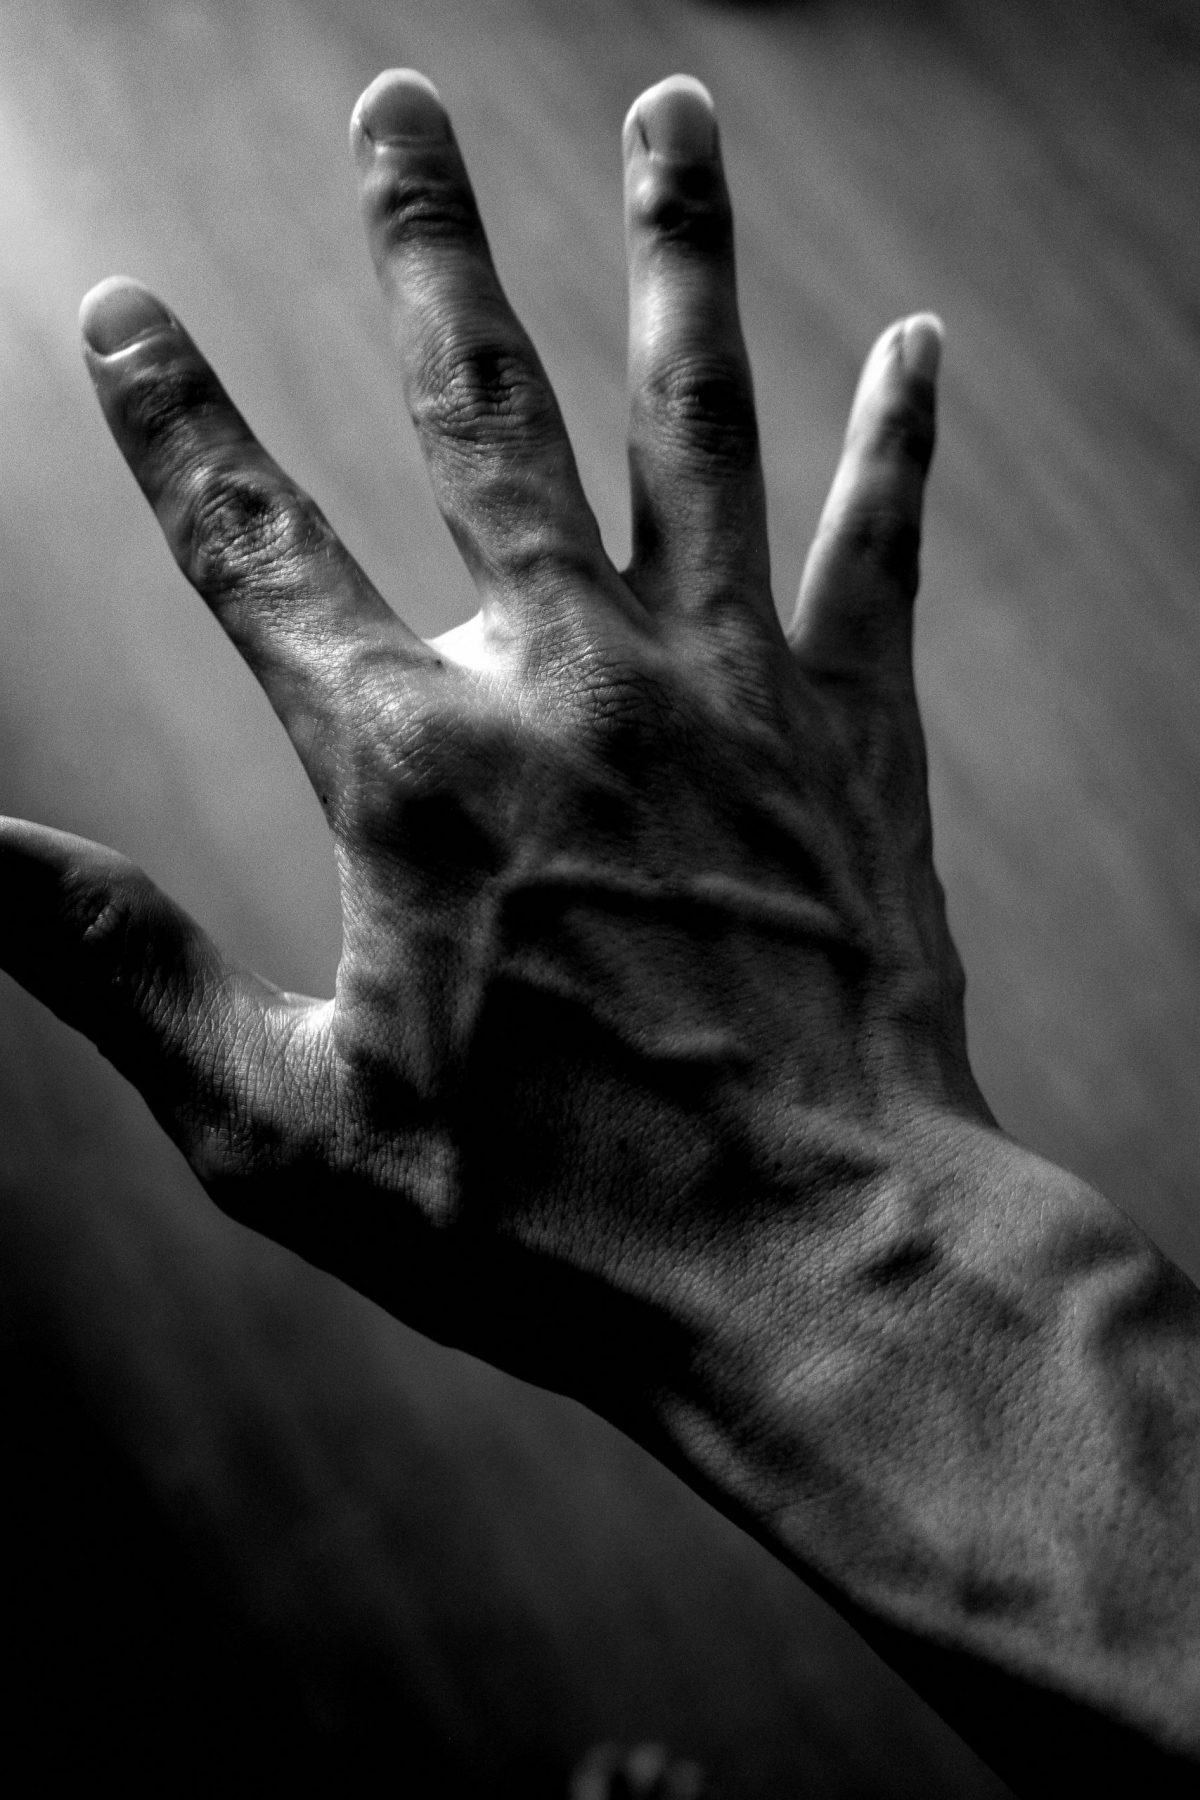 hand ERIC KIM vein black and white